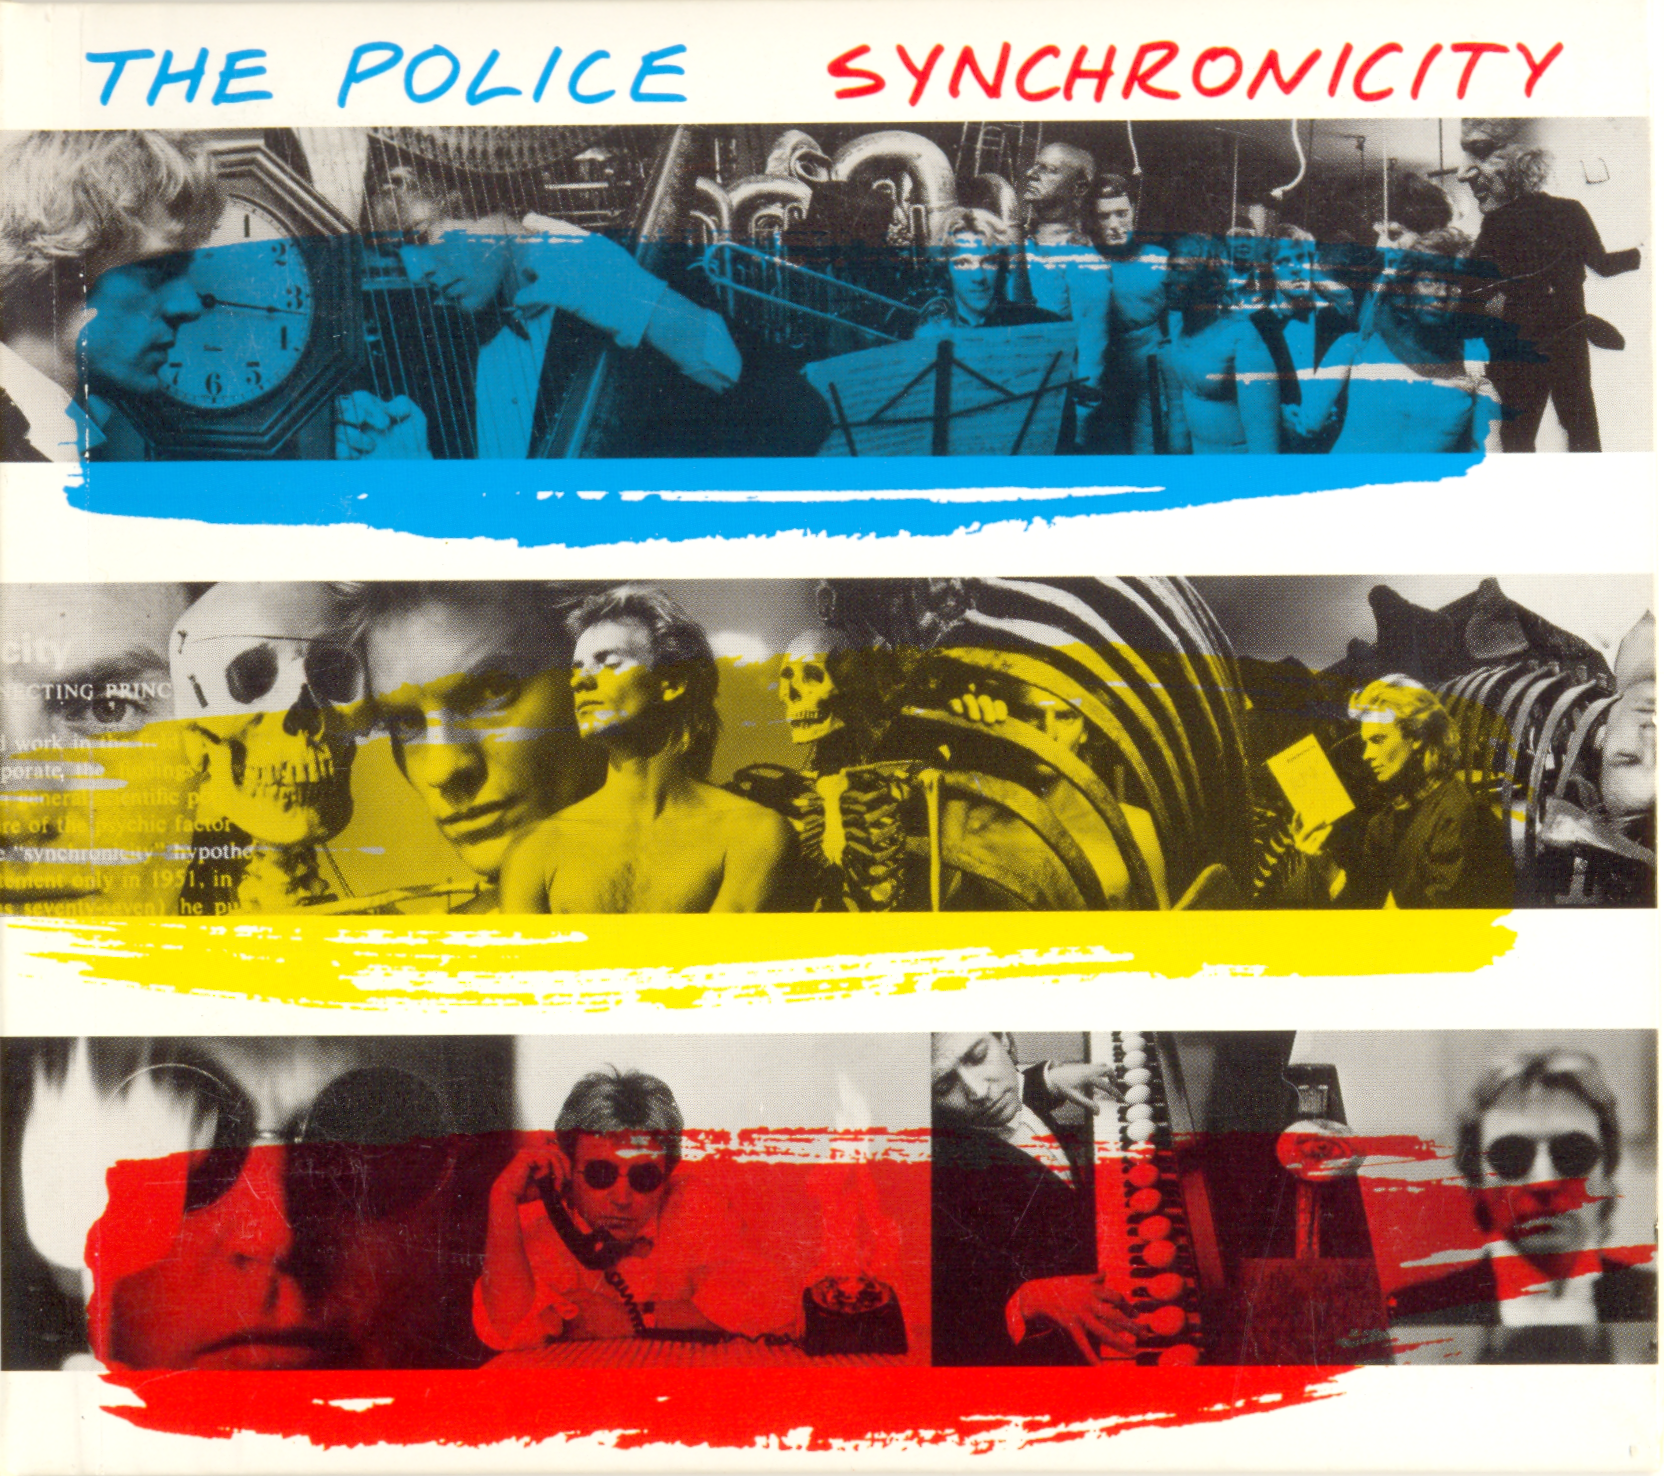 Synchronicity The Police 1983 The Police Covers